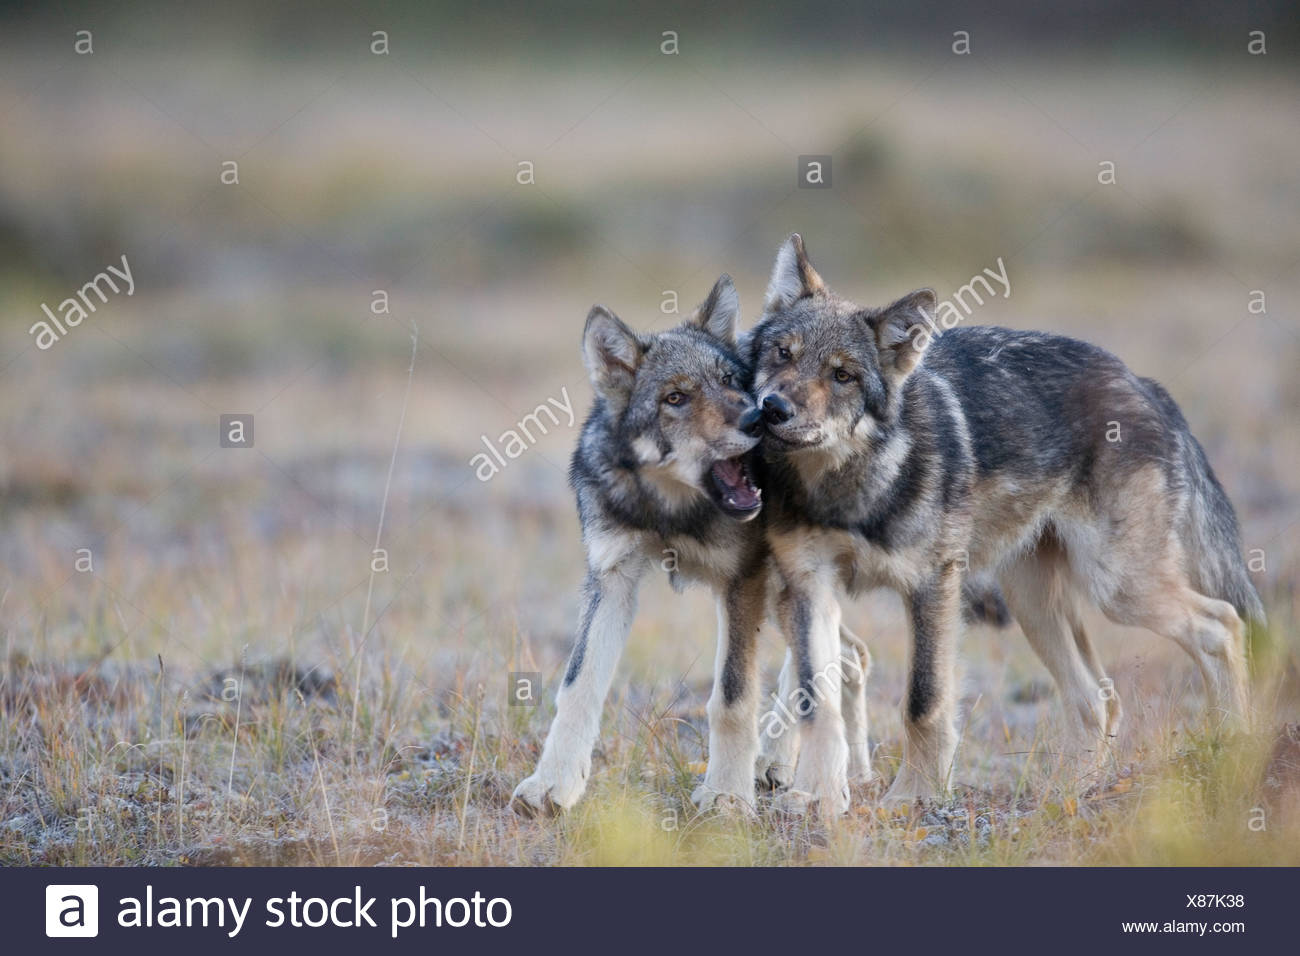 Wolf, Canis lupus, pups of Grant Creek pack play, alpine tundra, autumn, Denali National Park, Alaska, horizontal, wild - Stock Image